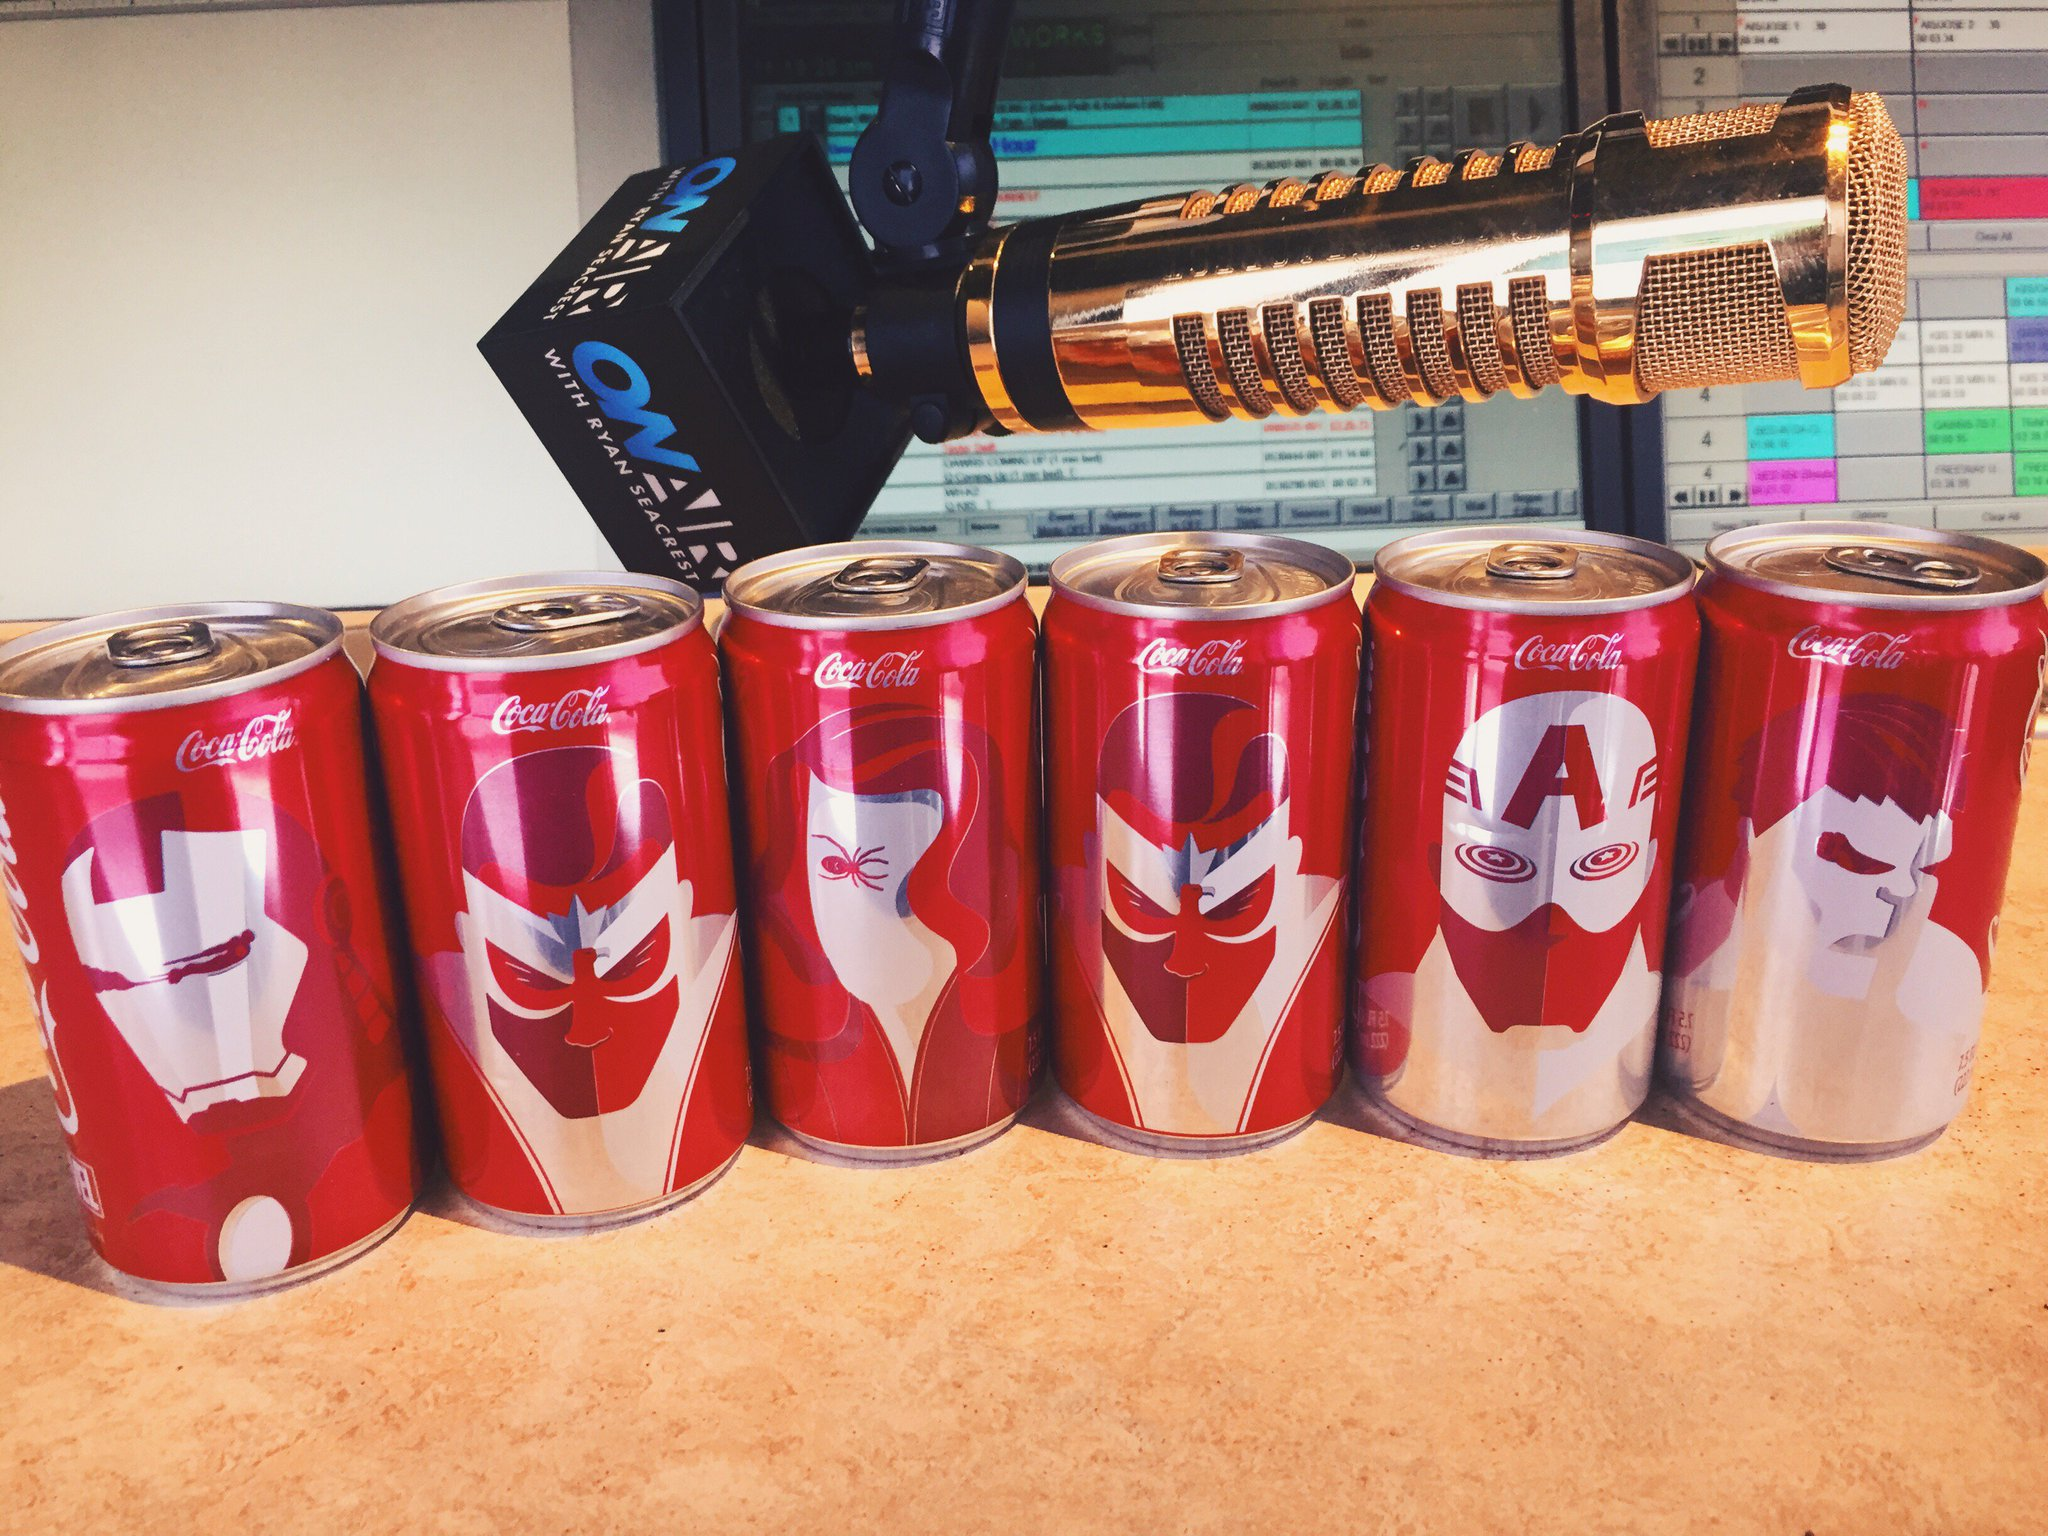 love these Coca-Cola Marvel Mini Cans that showed up at my door. Follow @CocaCola for clues to get ur own #CokeMini https://t.co/IrnUXklYGQ